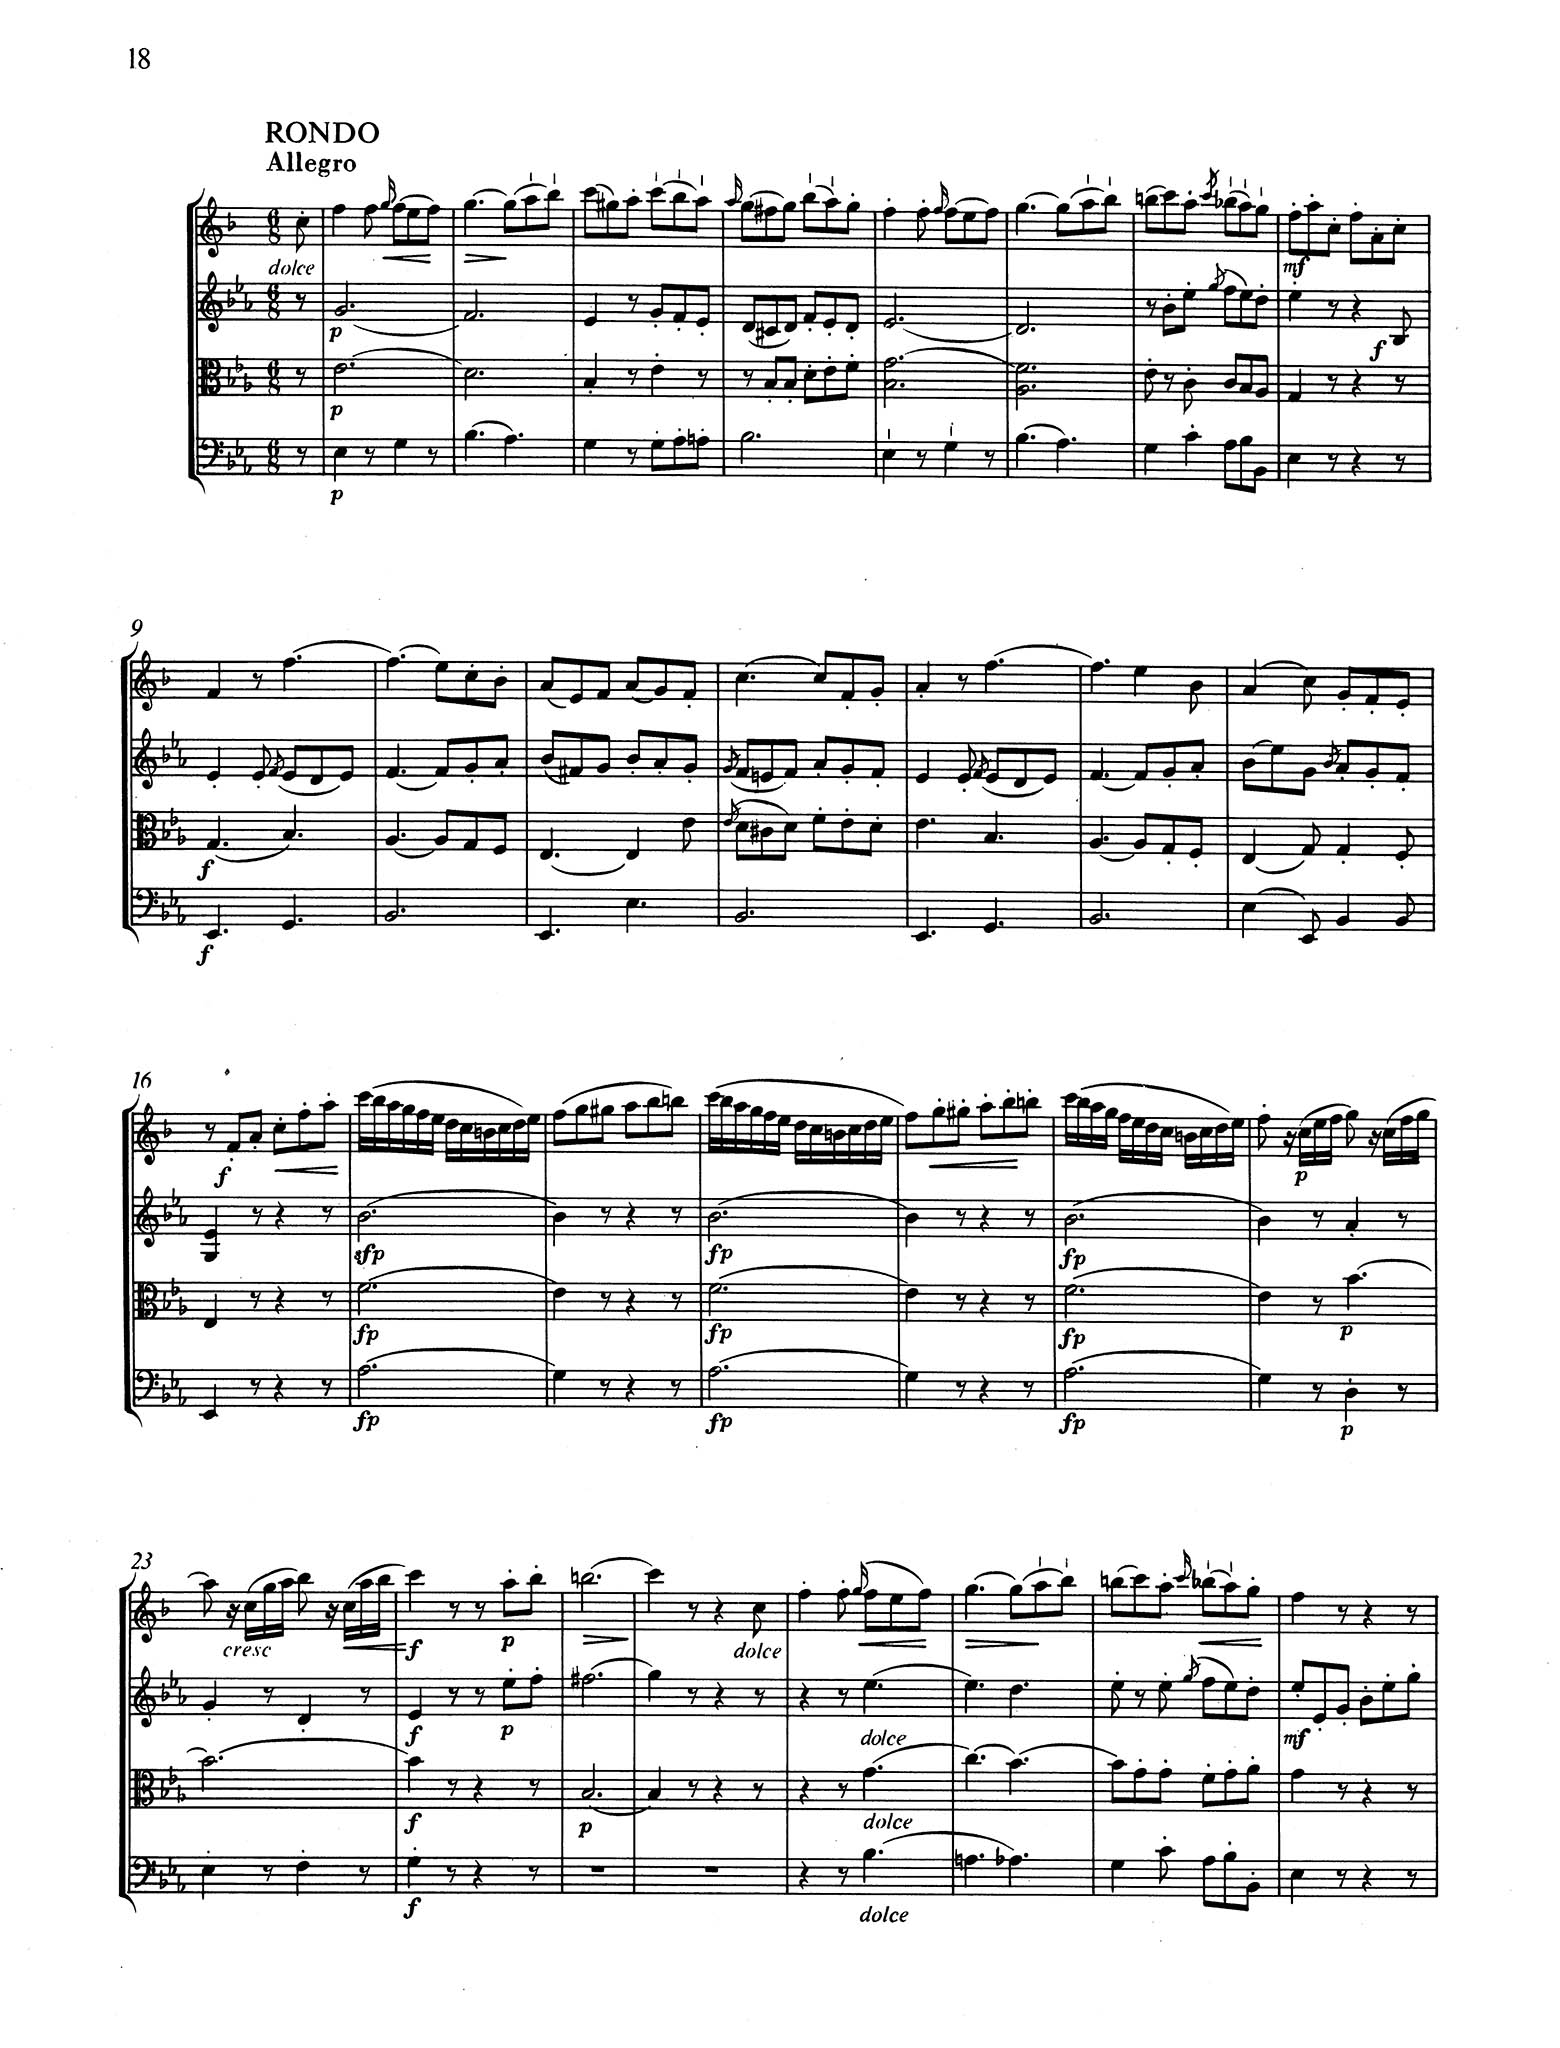 Violin Sonata in E-Flat Major, K. 380/374f - Movement 3